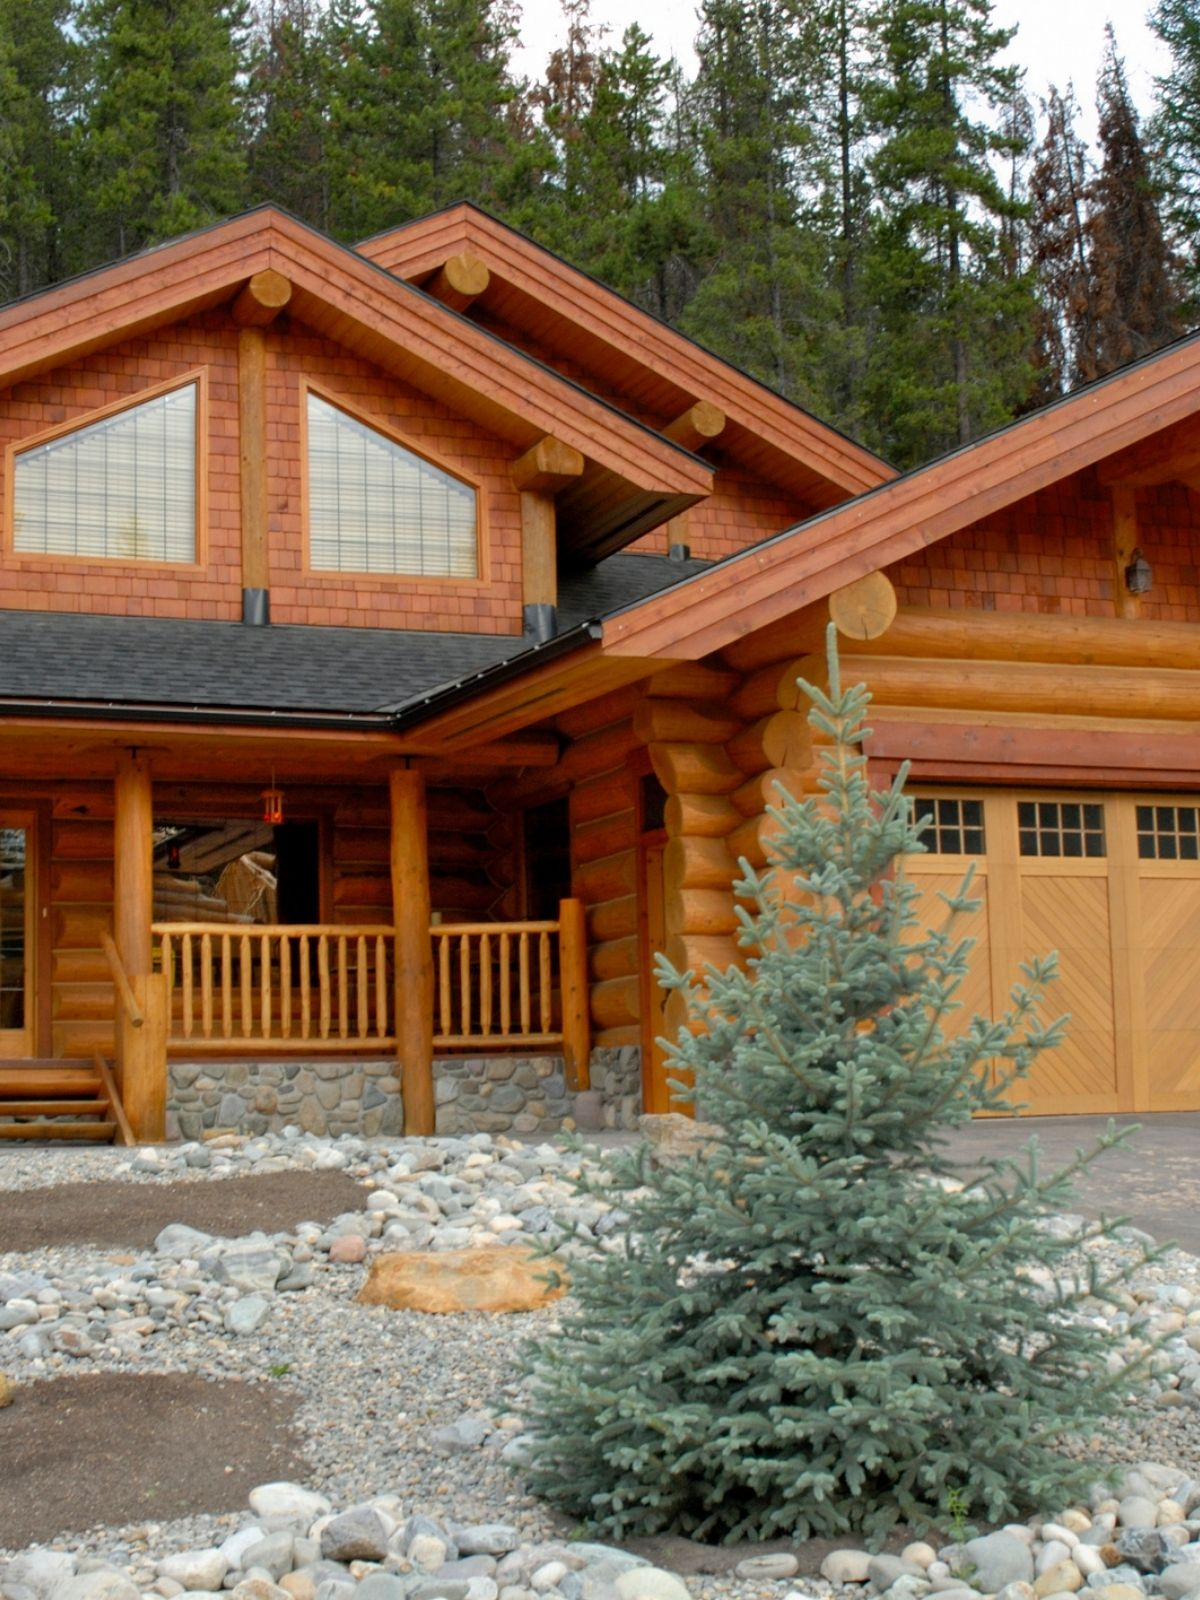 Log Home with Garden